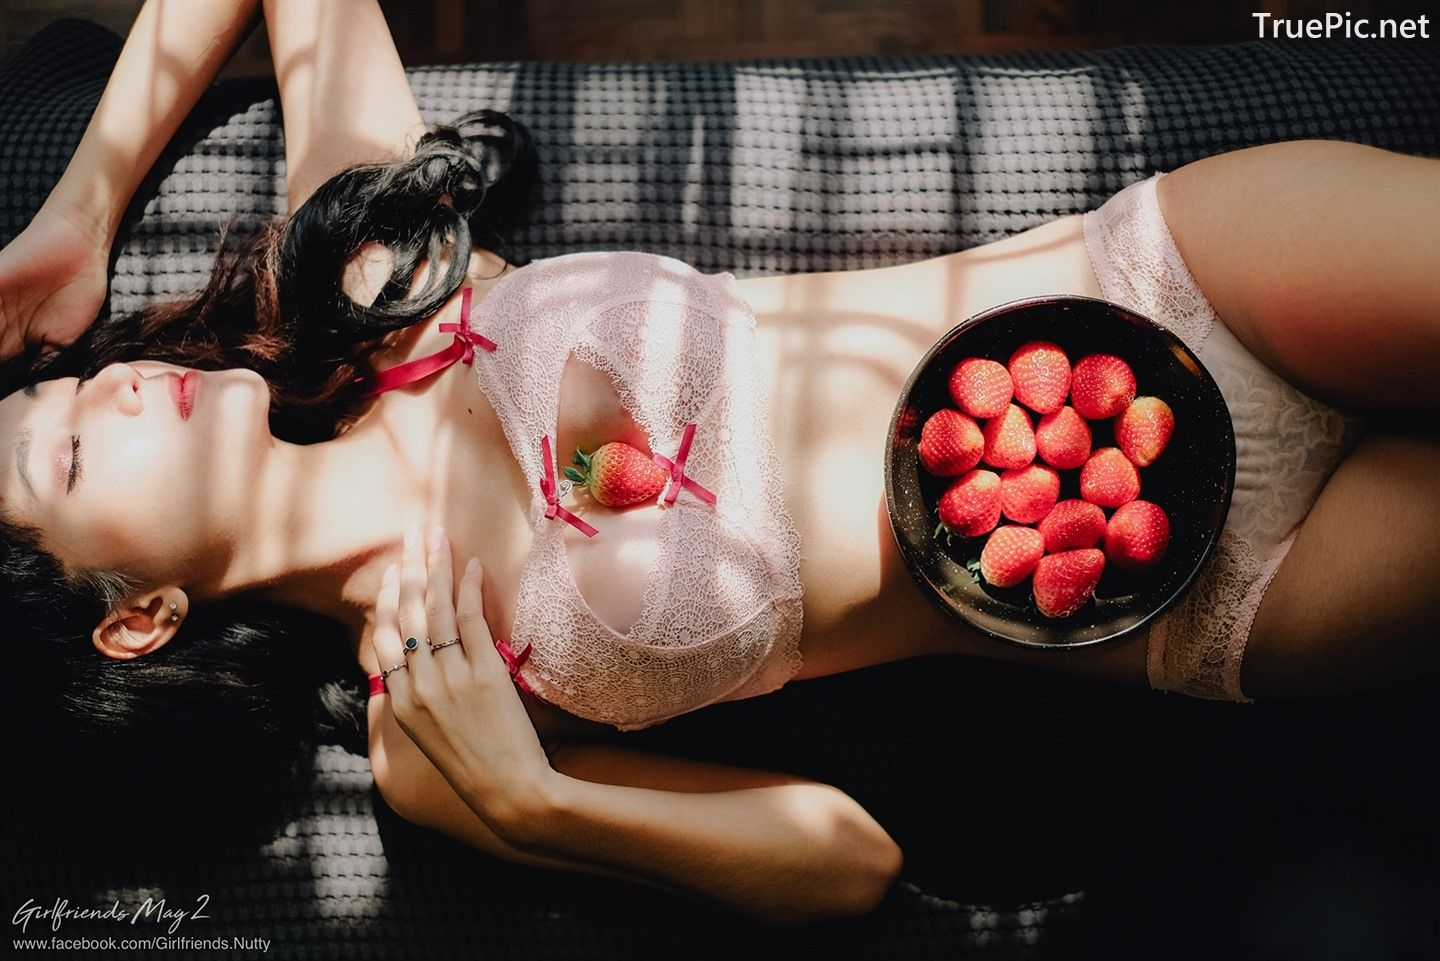 Image Thailand Model - Piyatida Rotjutharak - Strawberry Girl - TruePic.net - Picture-10